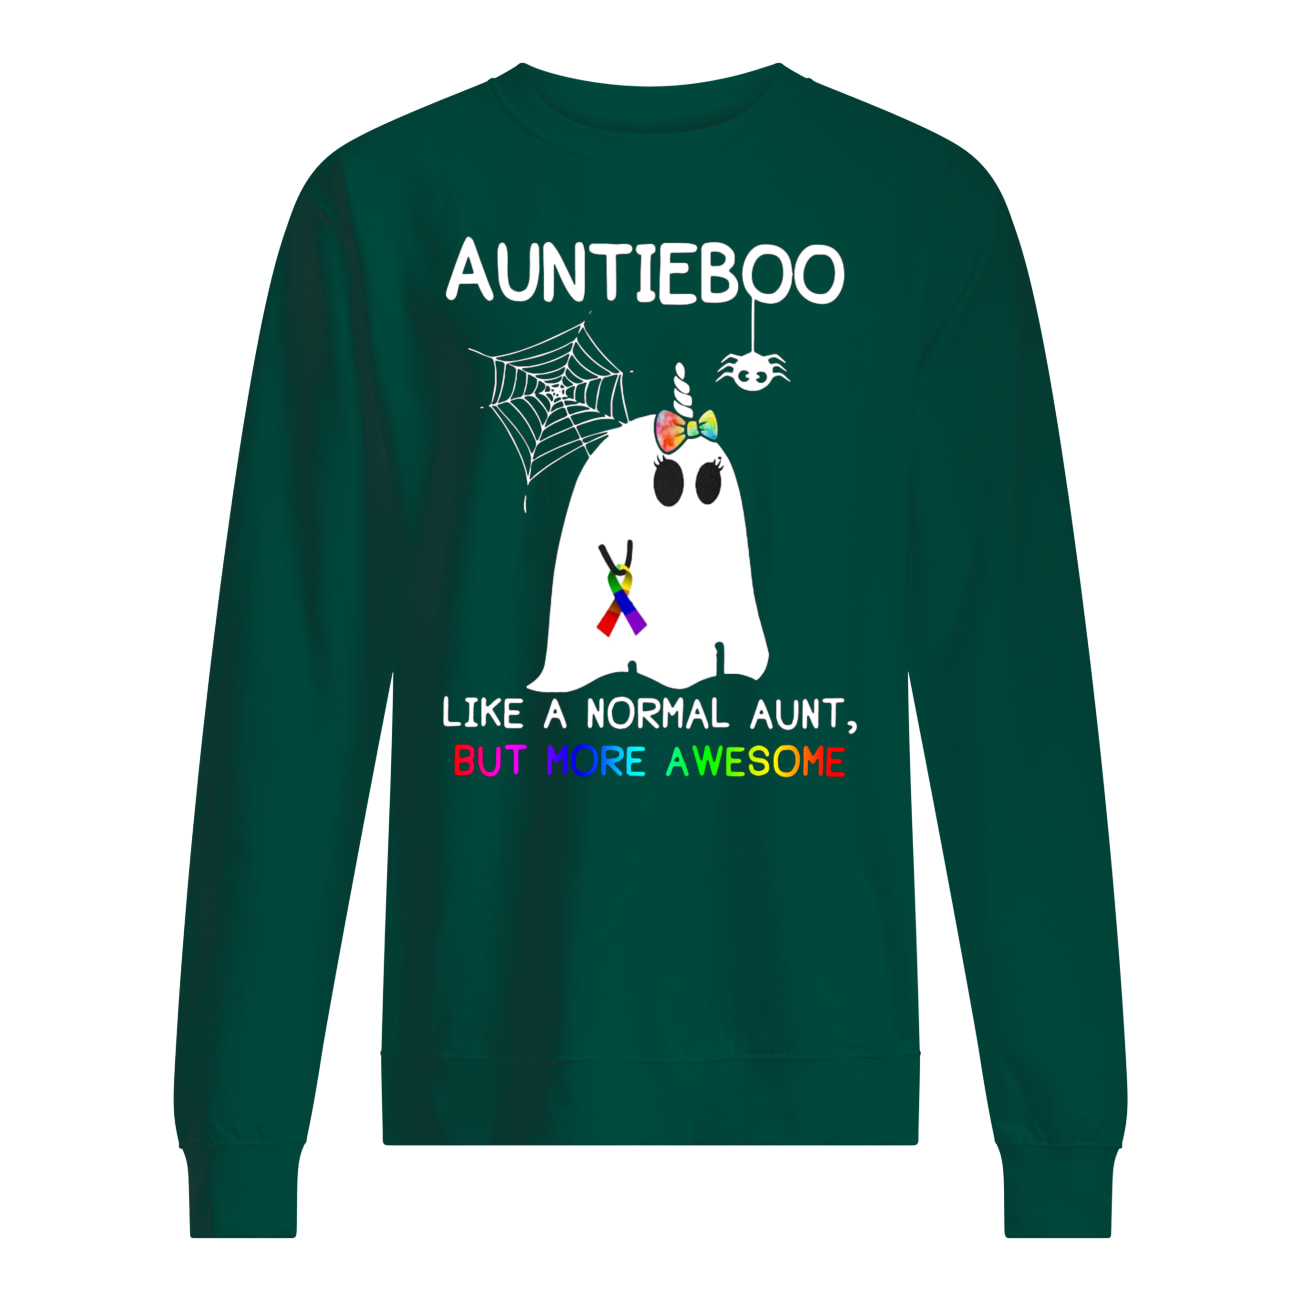 Auntieboo like a normal aunt but more awesome cancer ribbon sweatshirt